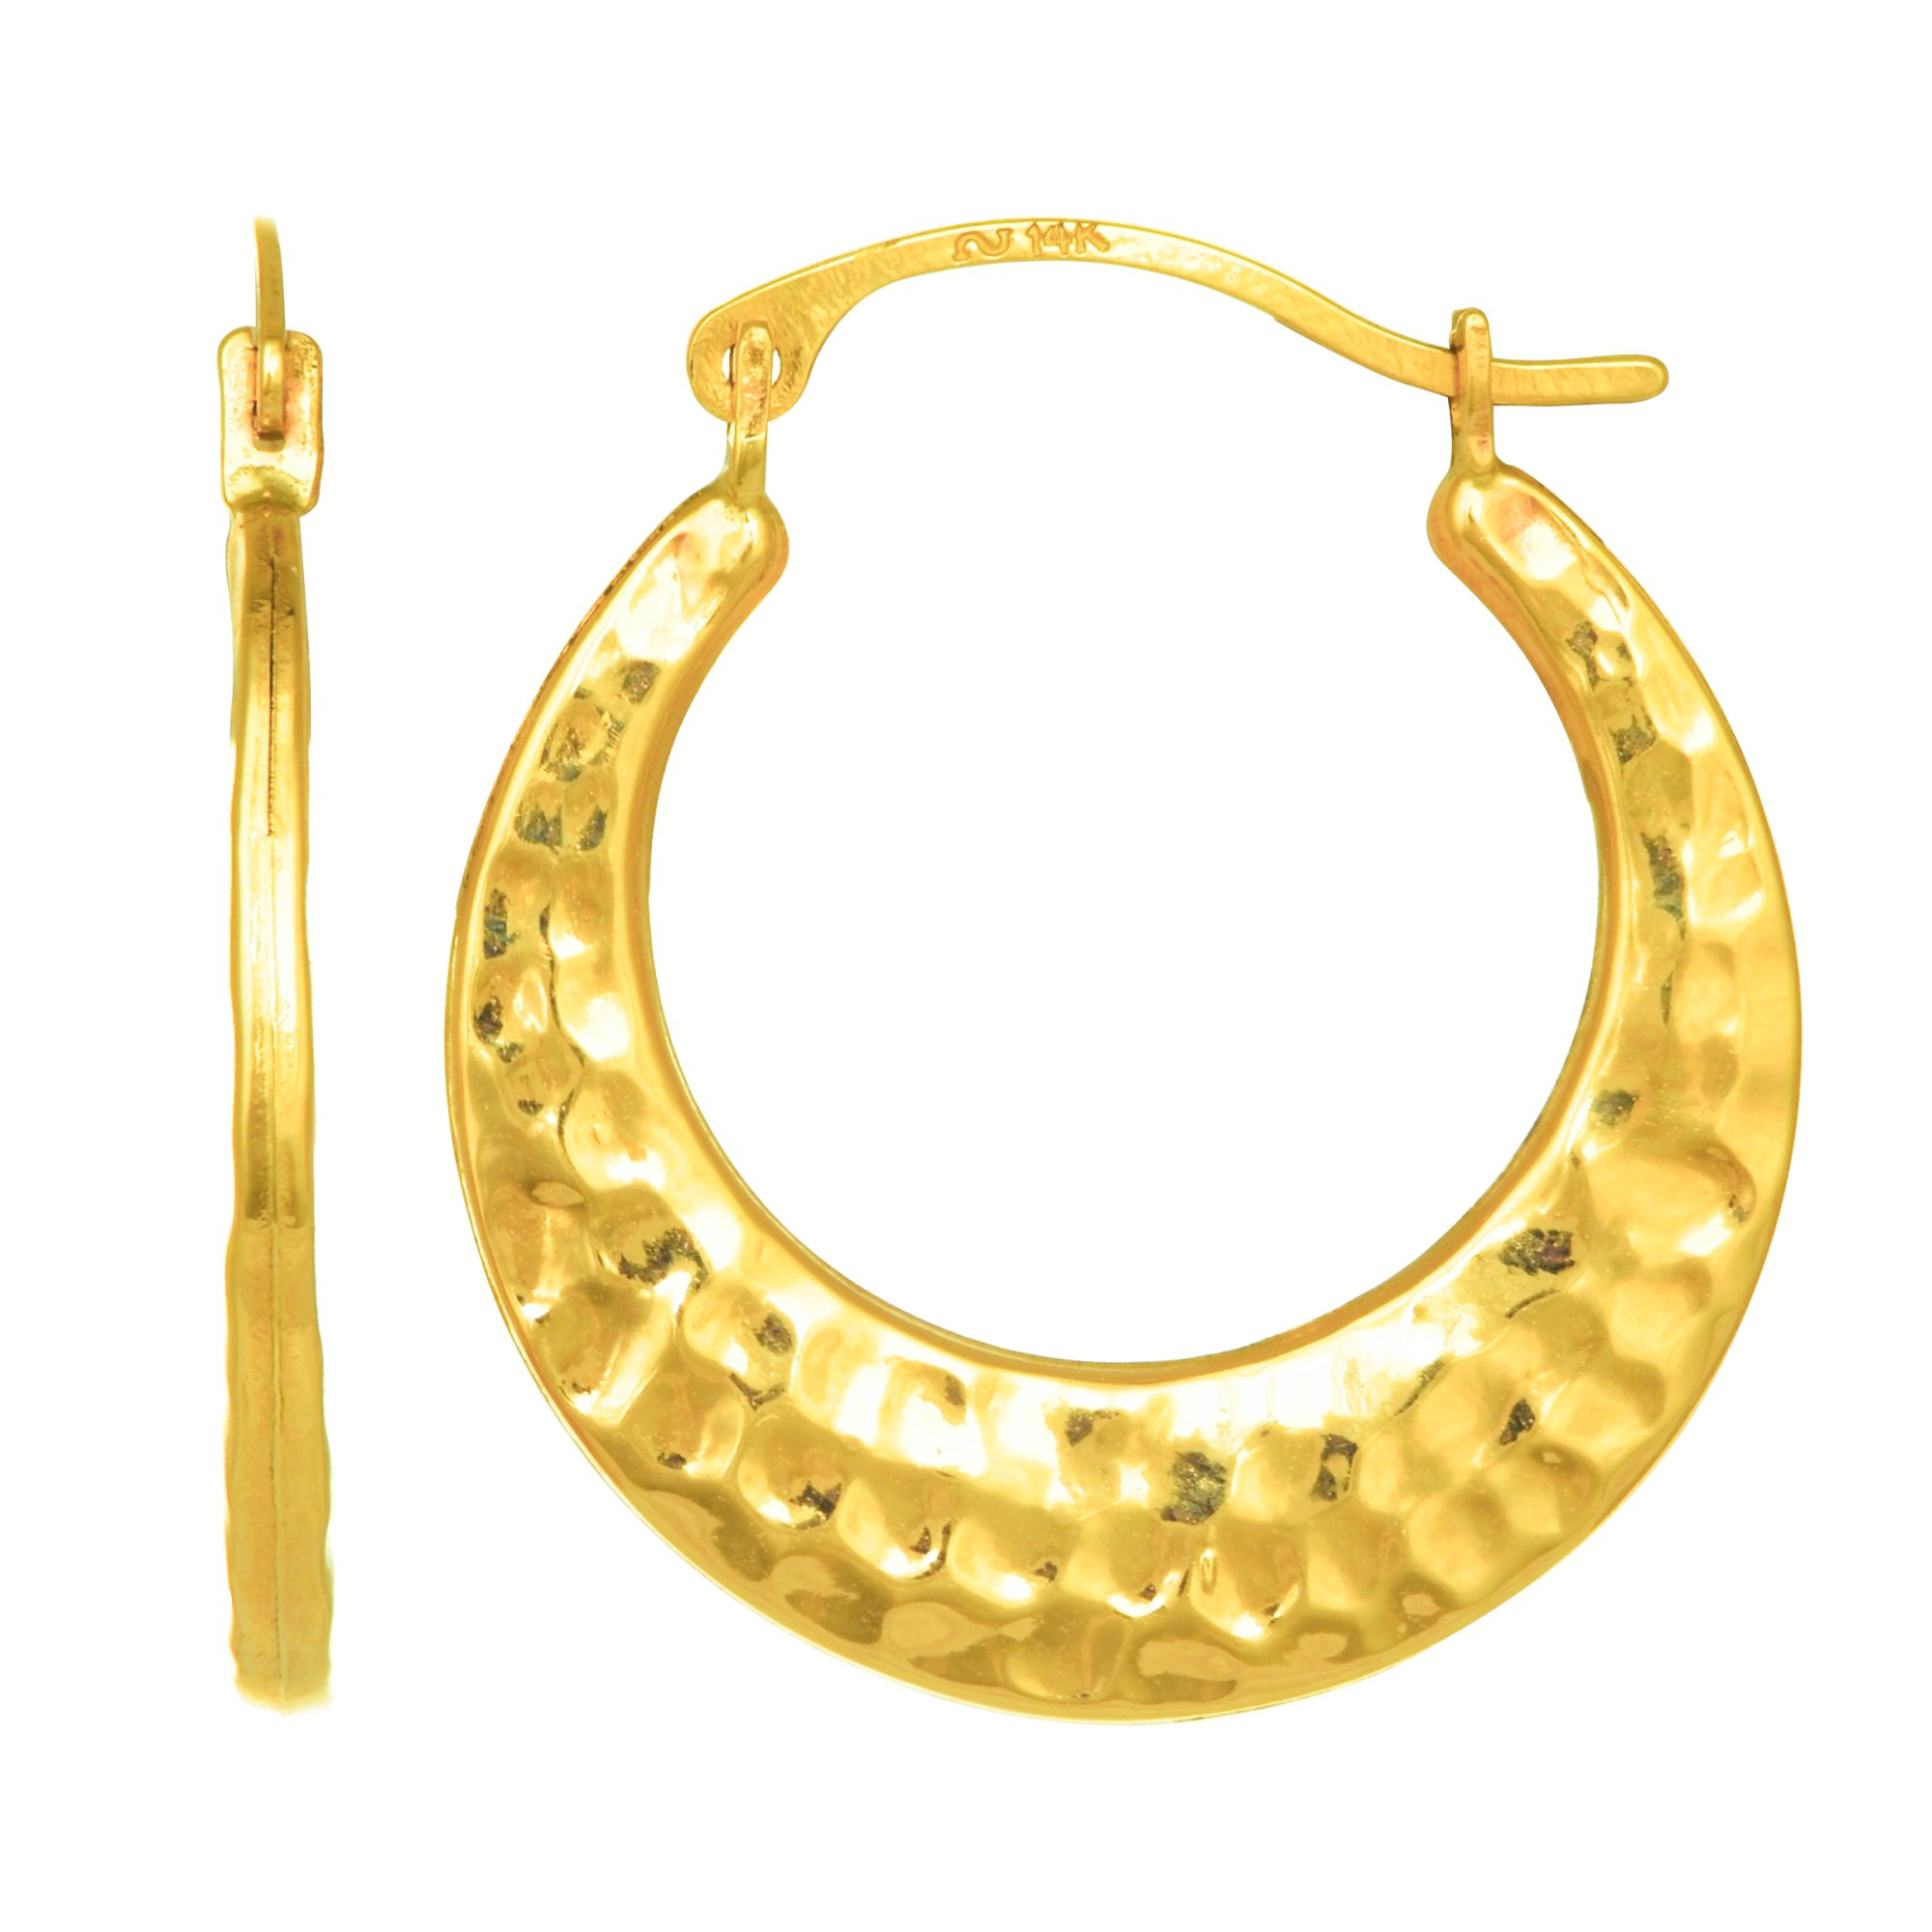 10K Yellow Gold Shiny Heart Shape Fancy Hoop Earrings with Hinged by IcedTime